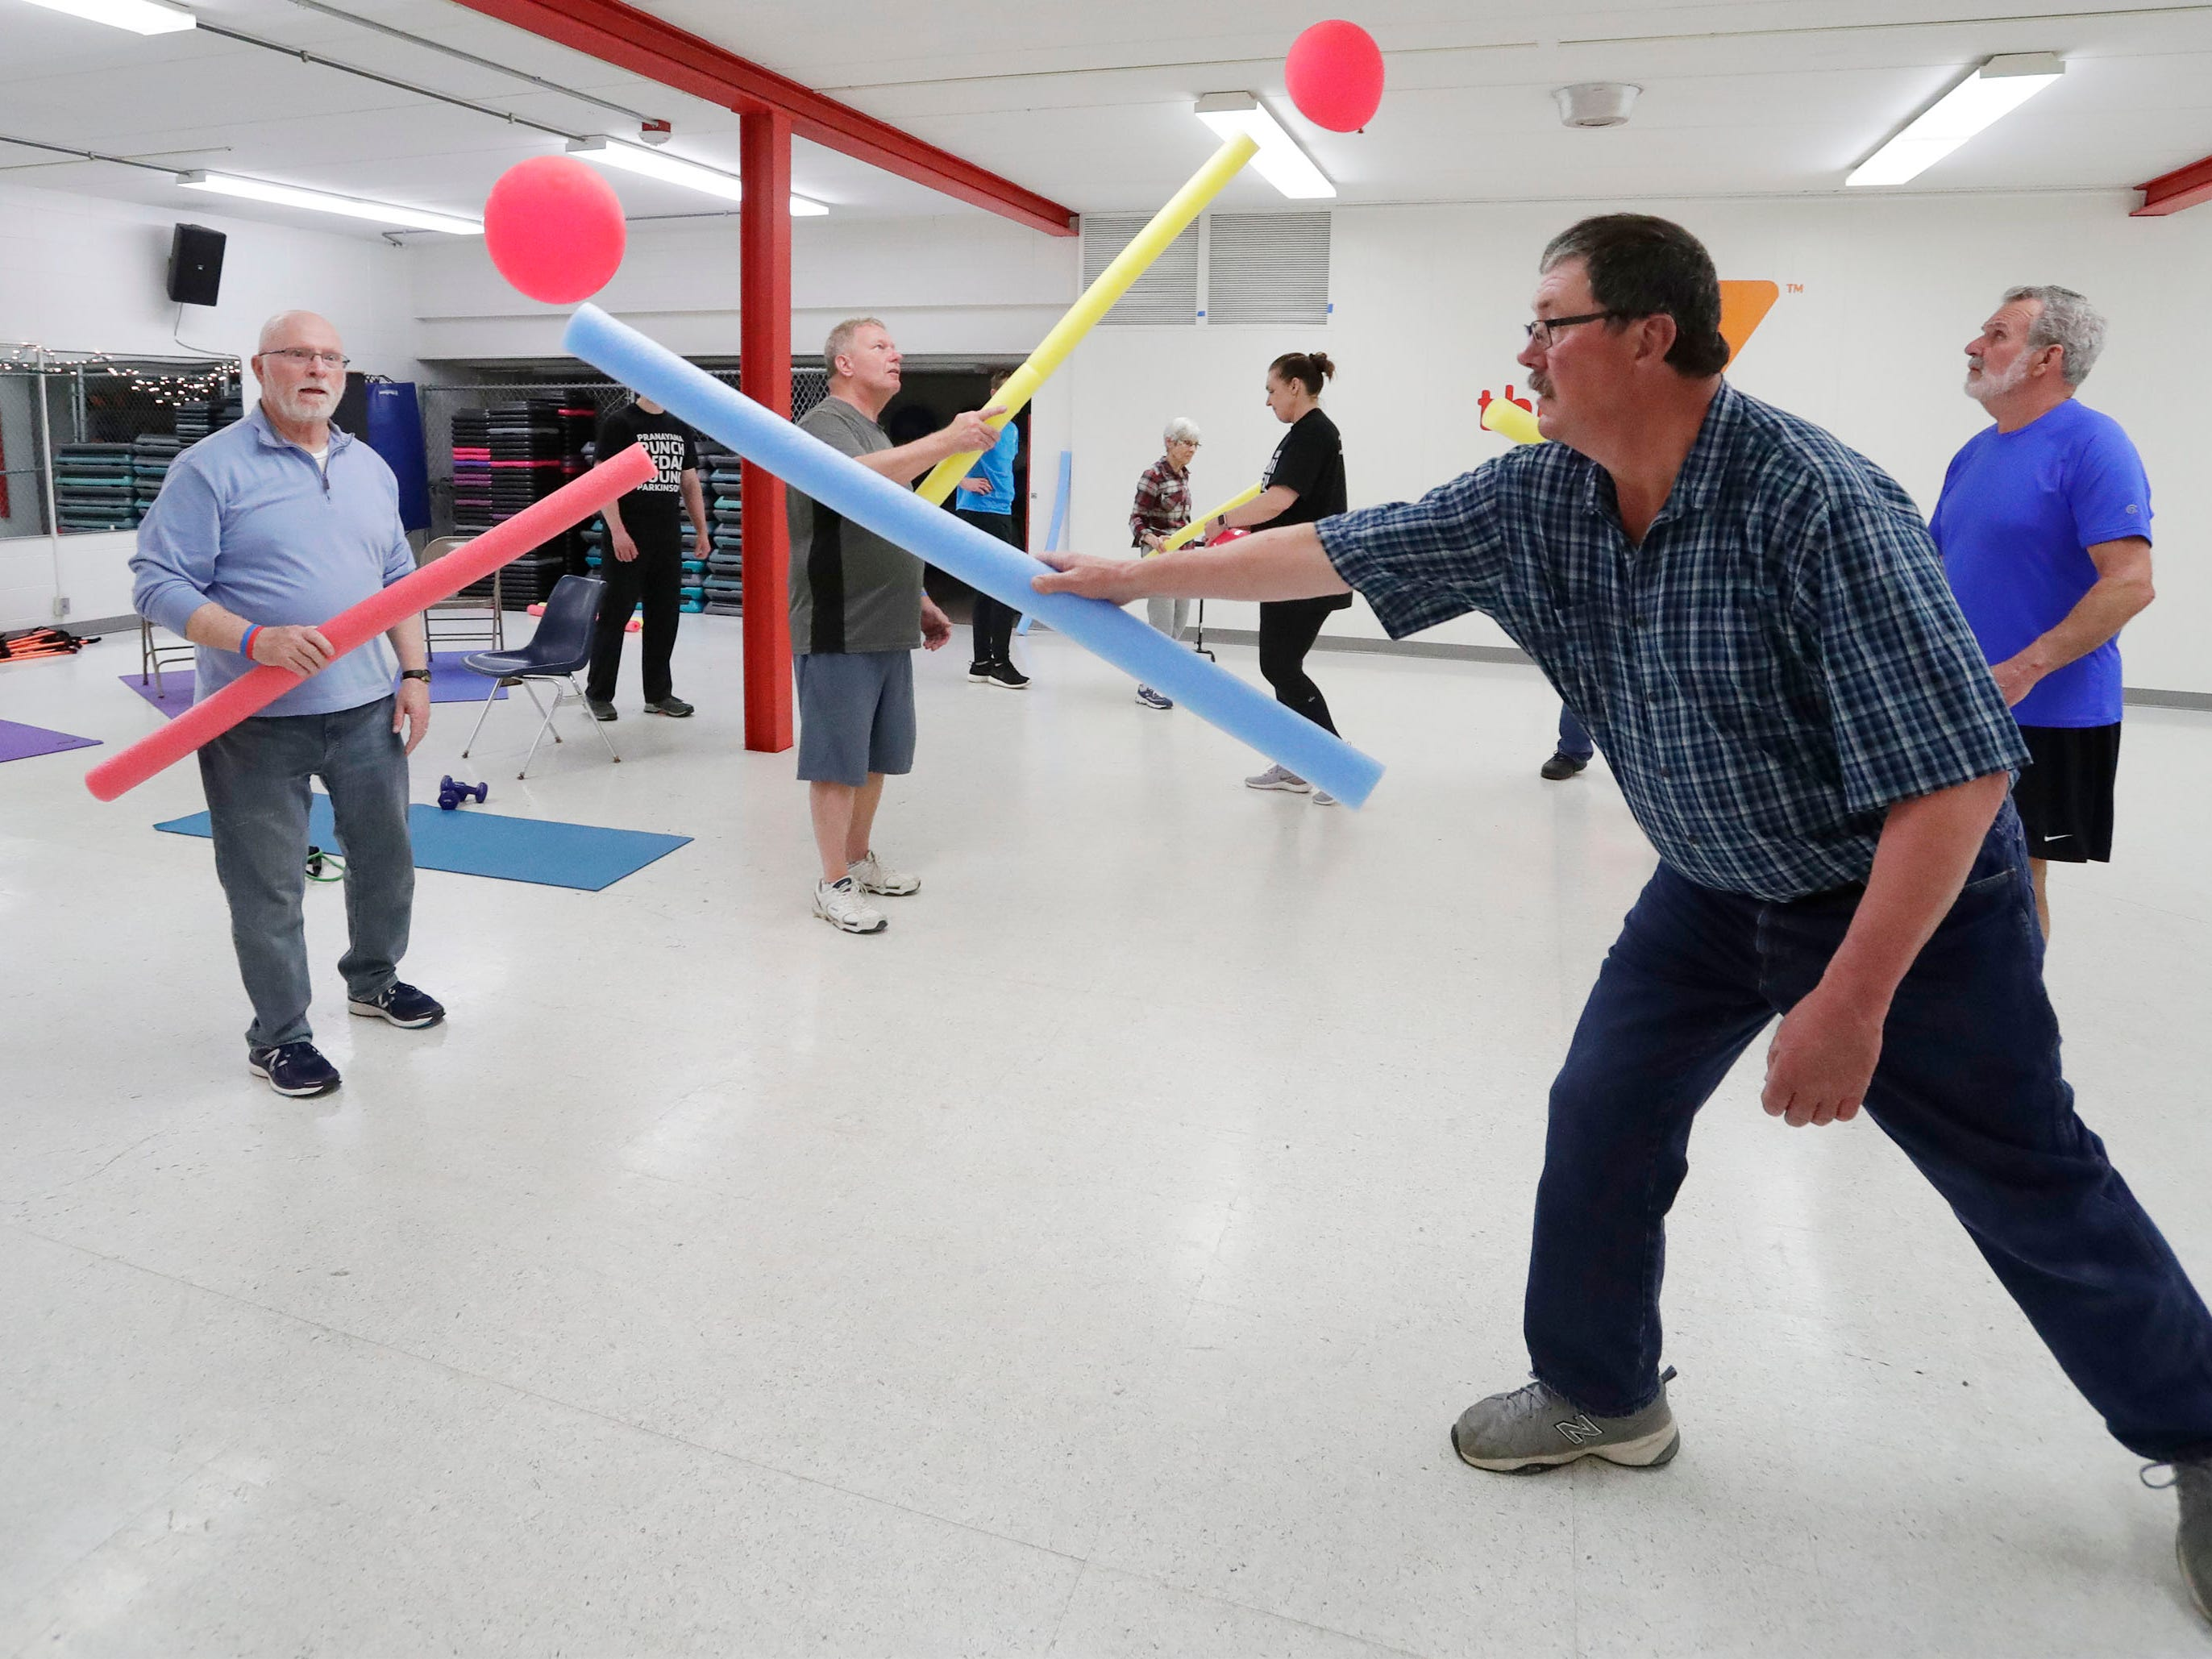 Ken Pipping of Elkhart Lake, Wis., left, waits for the balloon from Greg Van Helden of Sheboygan, during a YMCA Fighting Parkinson's class, Tuesday, March 21, 2019, in Sheboygan, Wis.